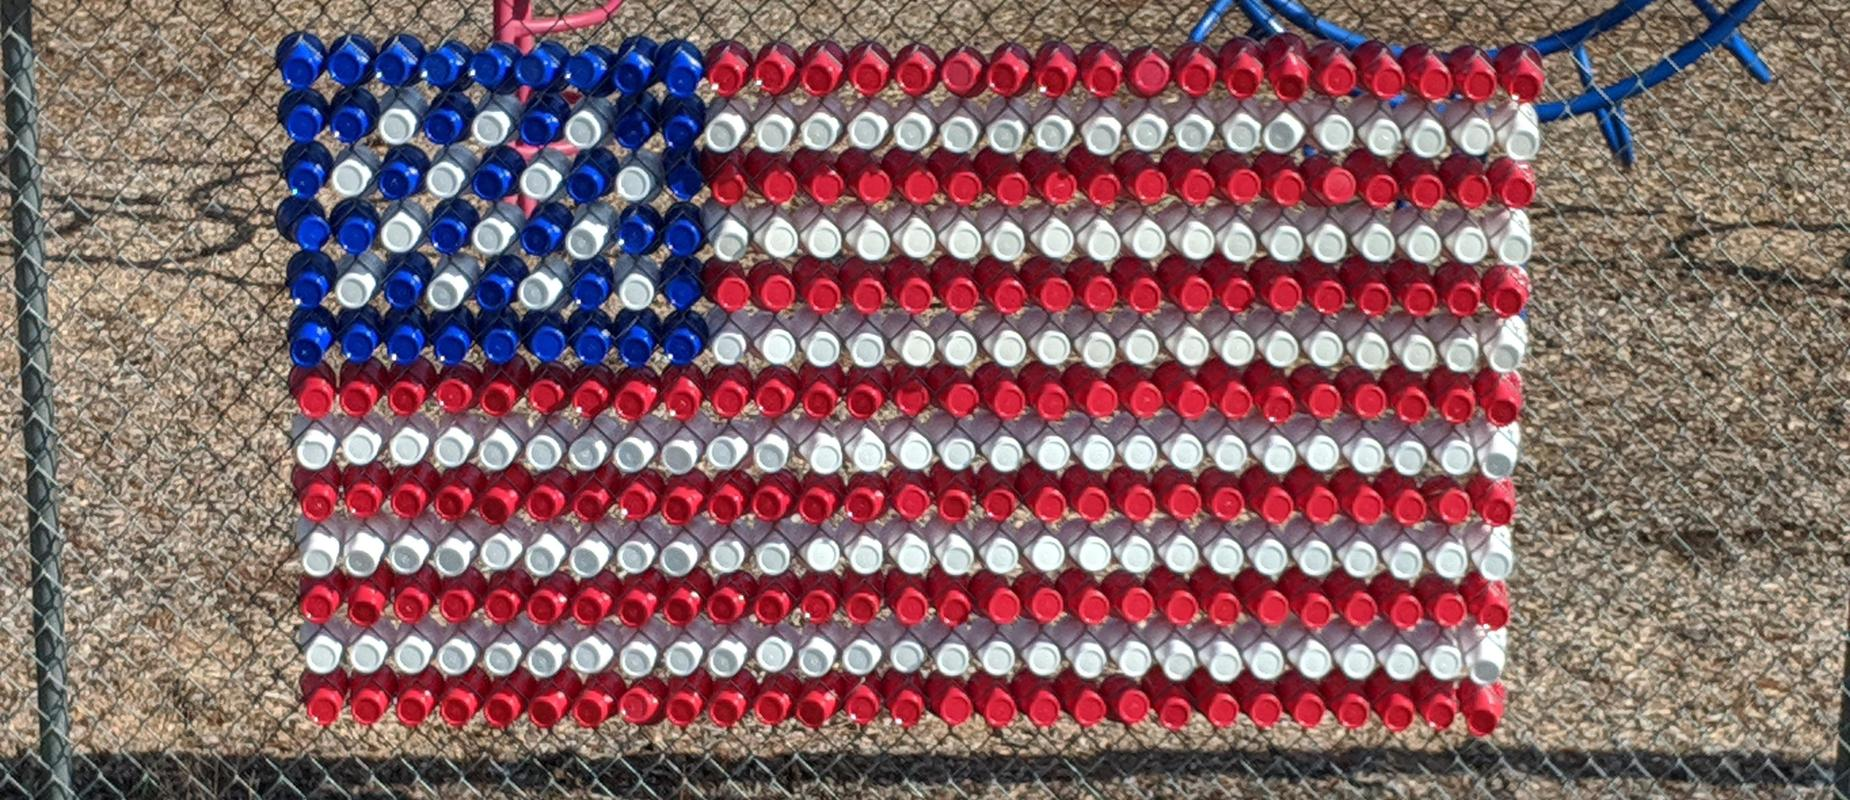 American Flag on the fence made out of dixie cups